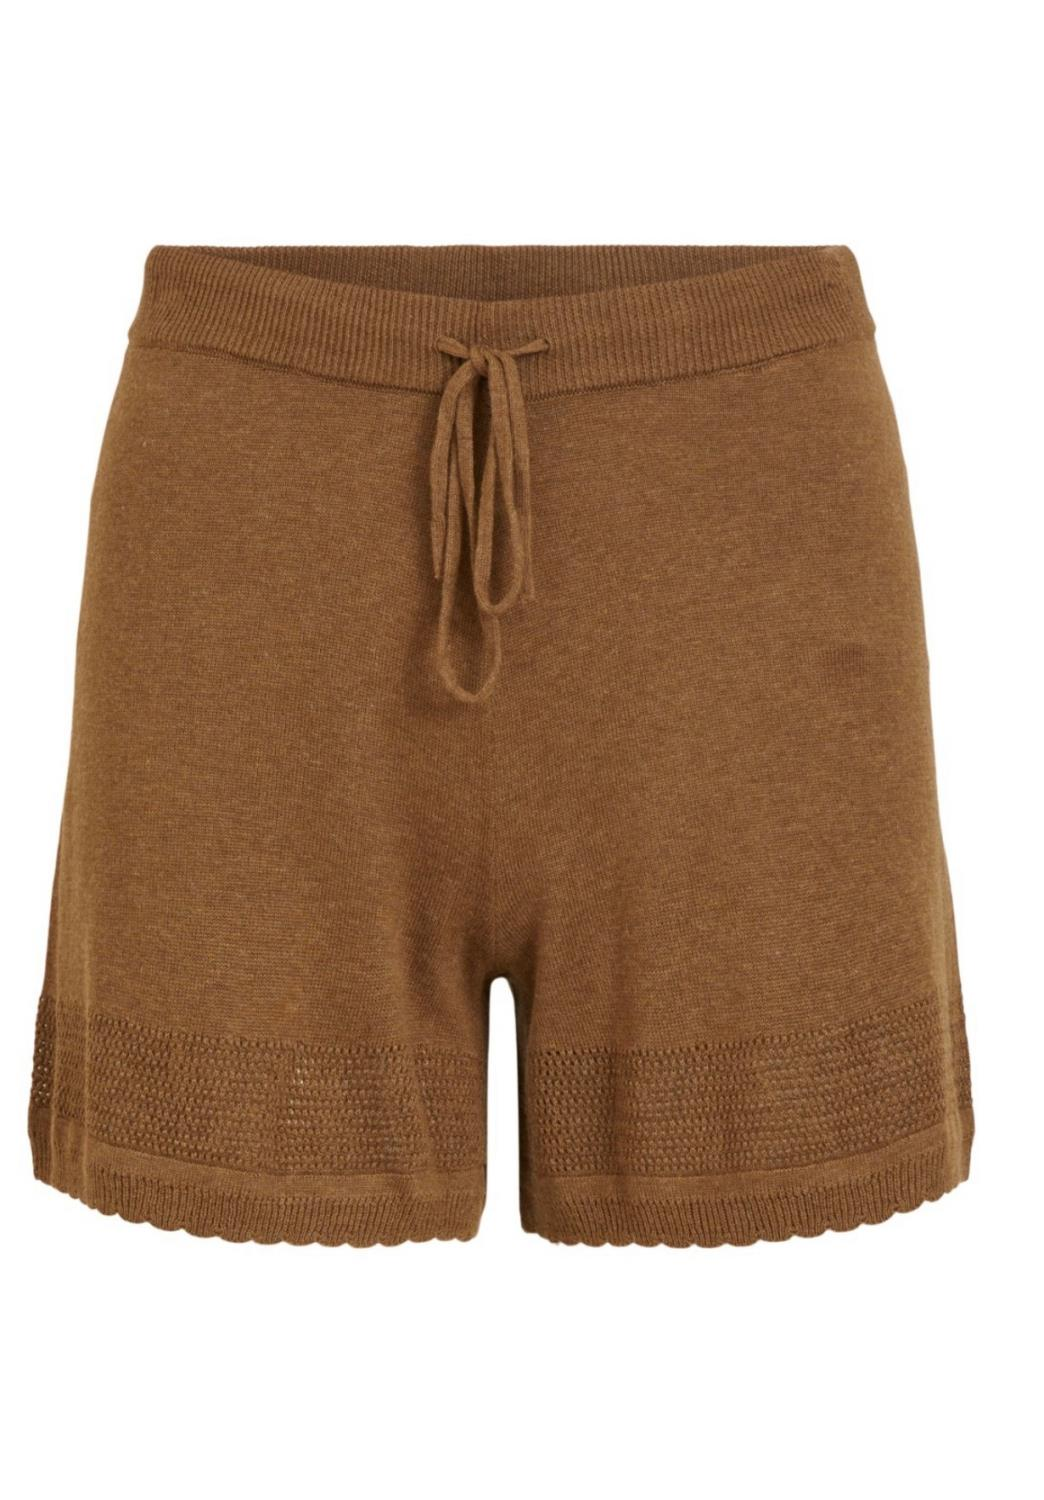 VILESLY KNIT SHORTS